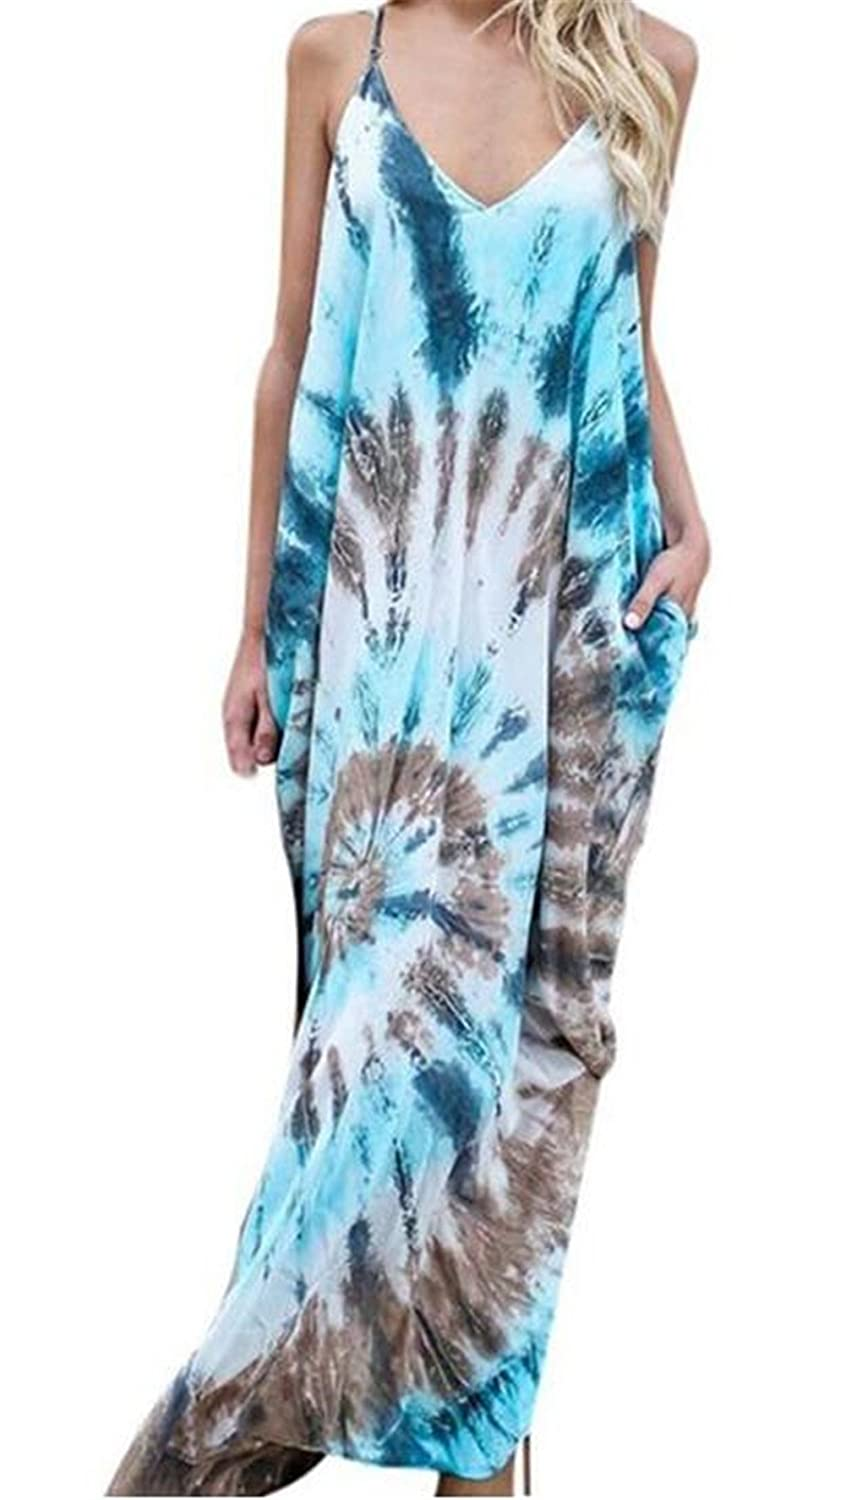 NANYUAYAKY Summer Boho Women V Neck Casual Beach Backless Long Dress